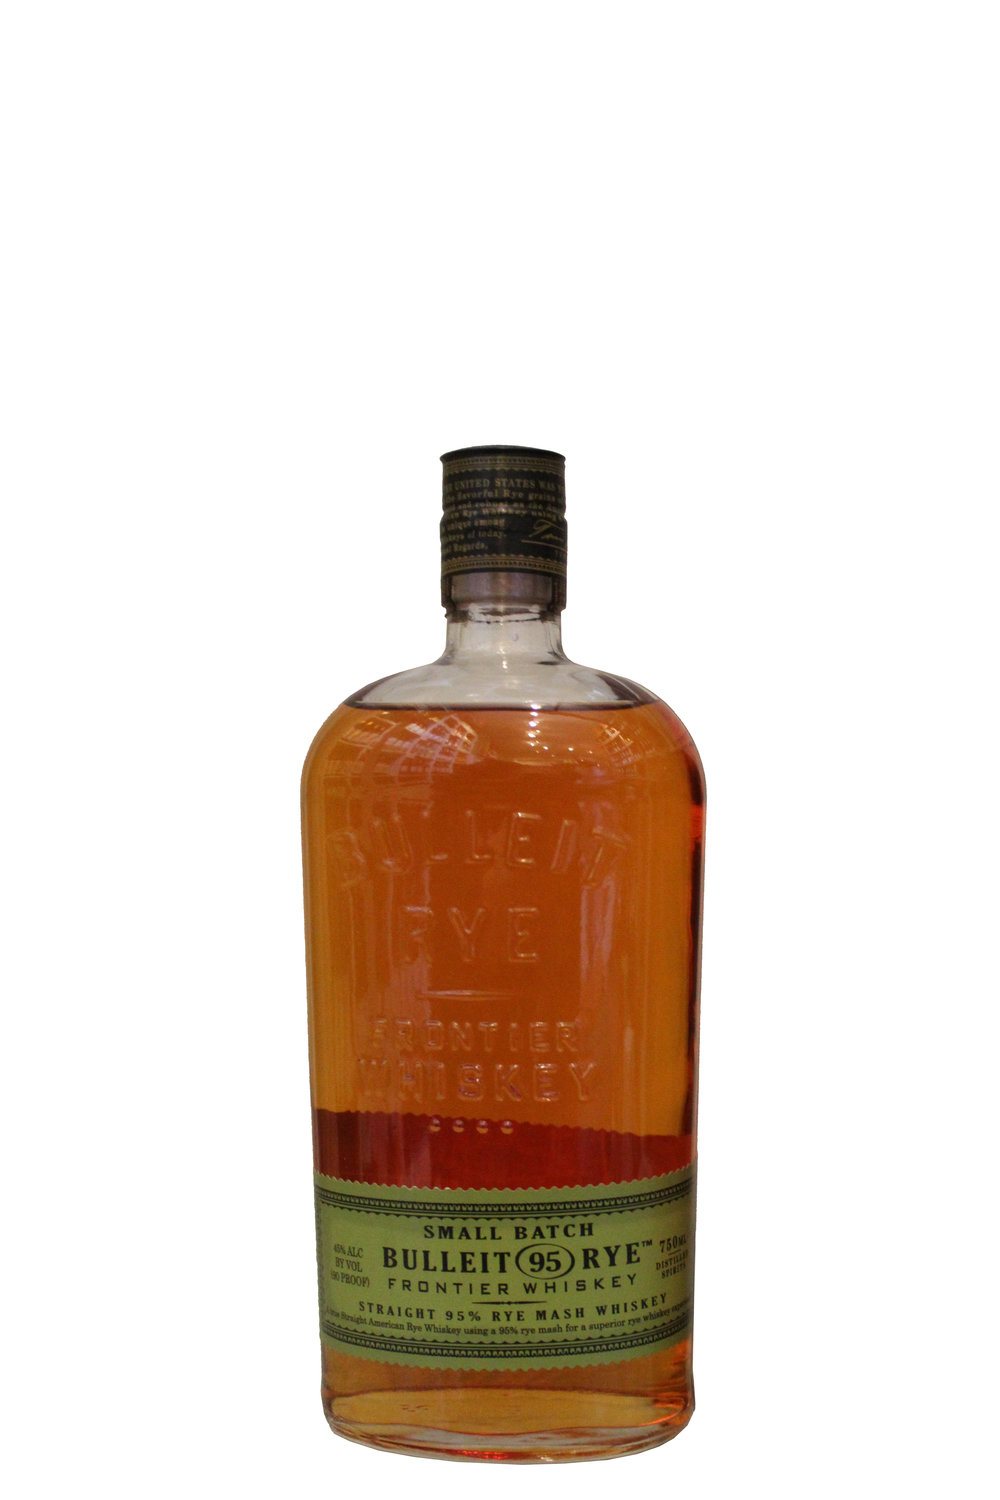 Small-Batch Rye Whiskey  Bulleit Rye,  Kentucky